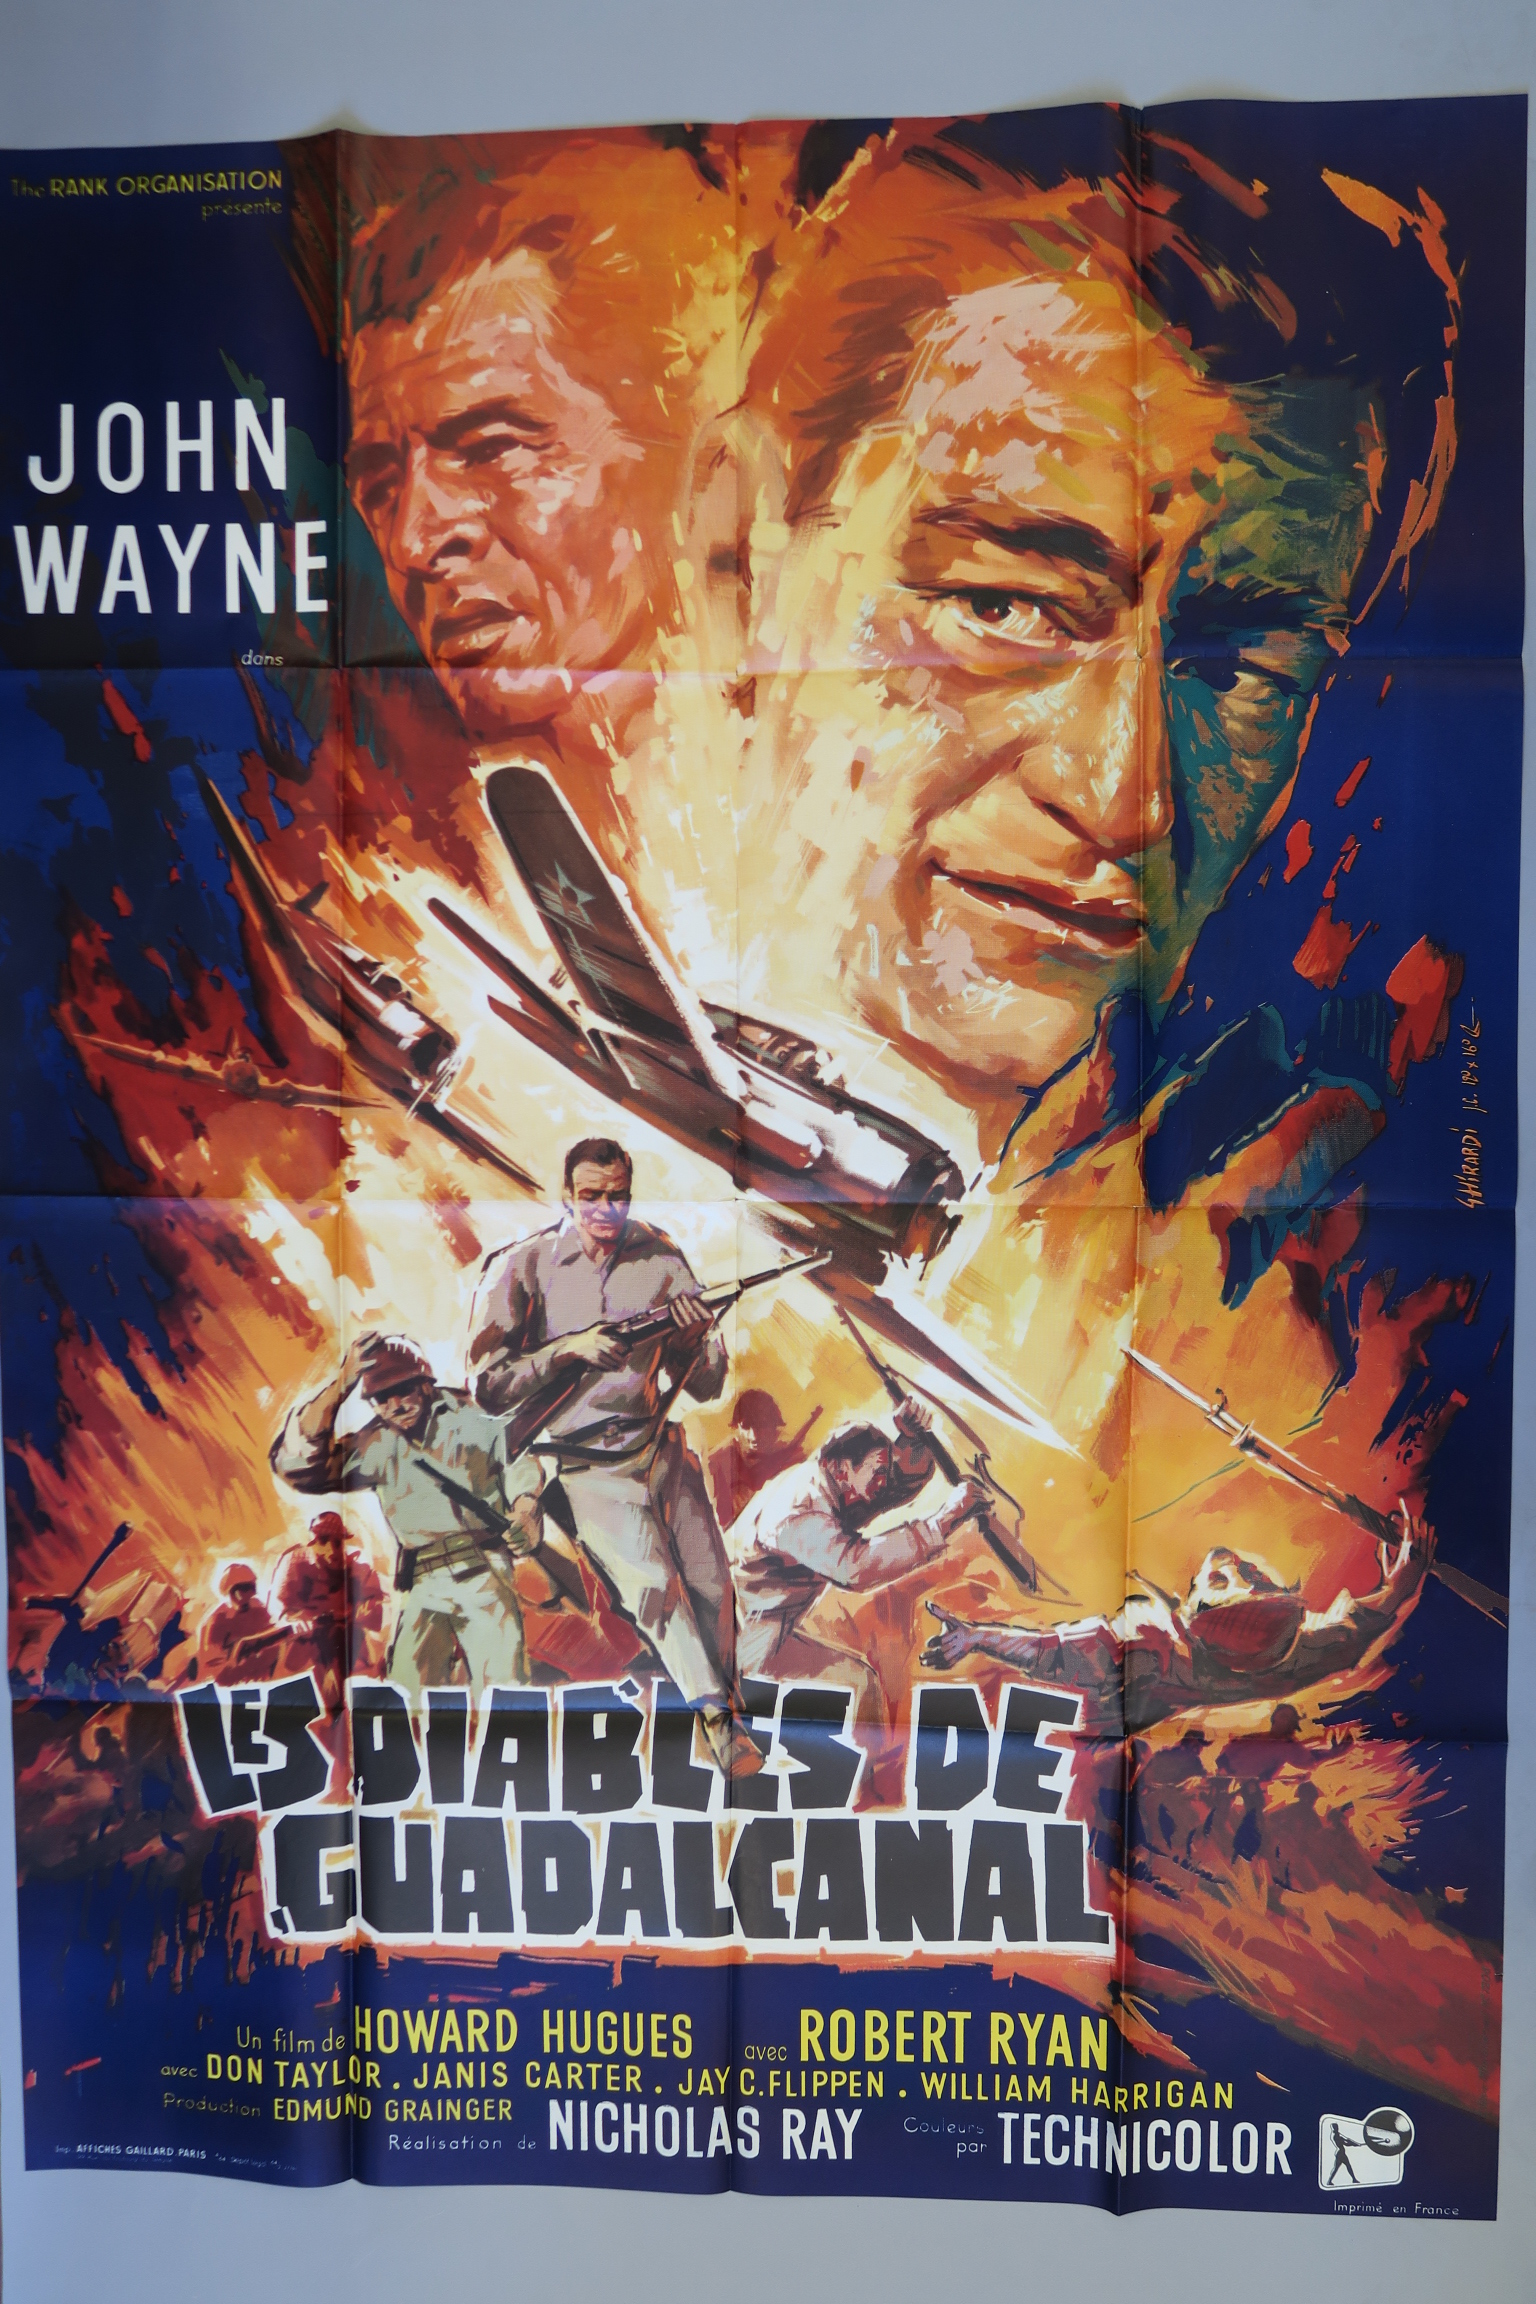 Lot 33 - Collection of 7 War & Western French Grandes inc Flying Leathernecks starring John Wayne directed